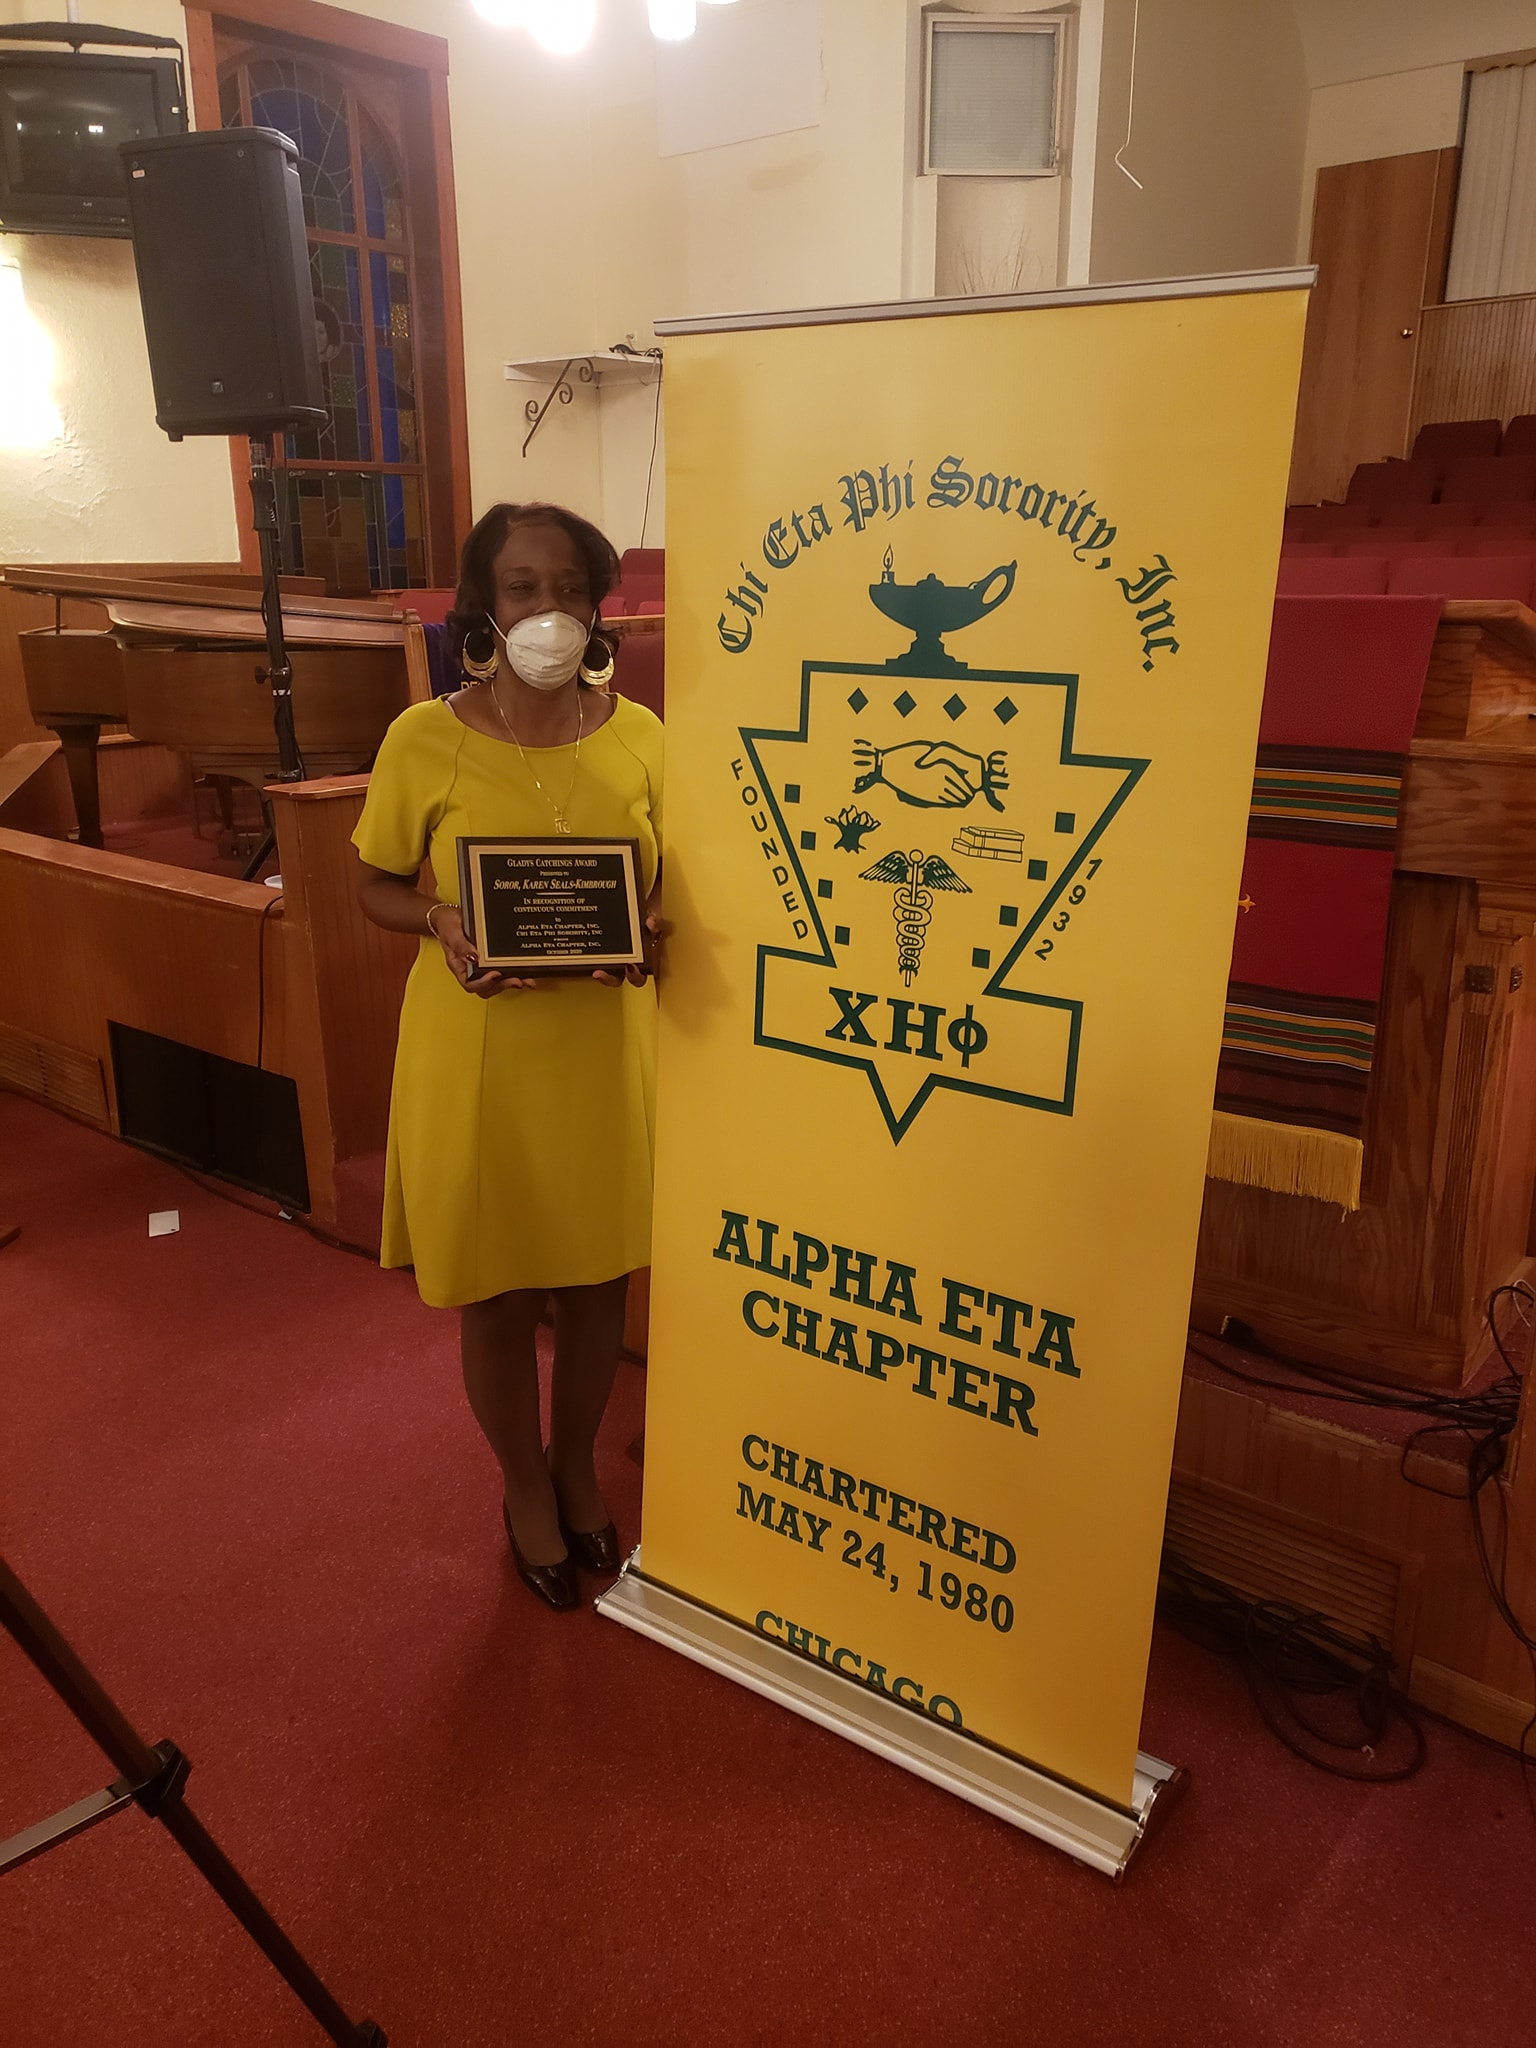 Gladys Catchings Award